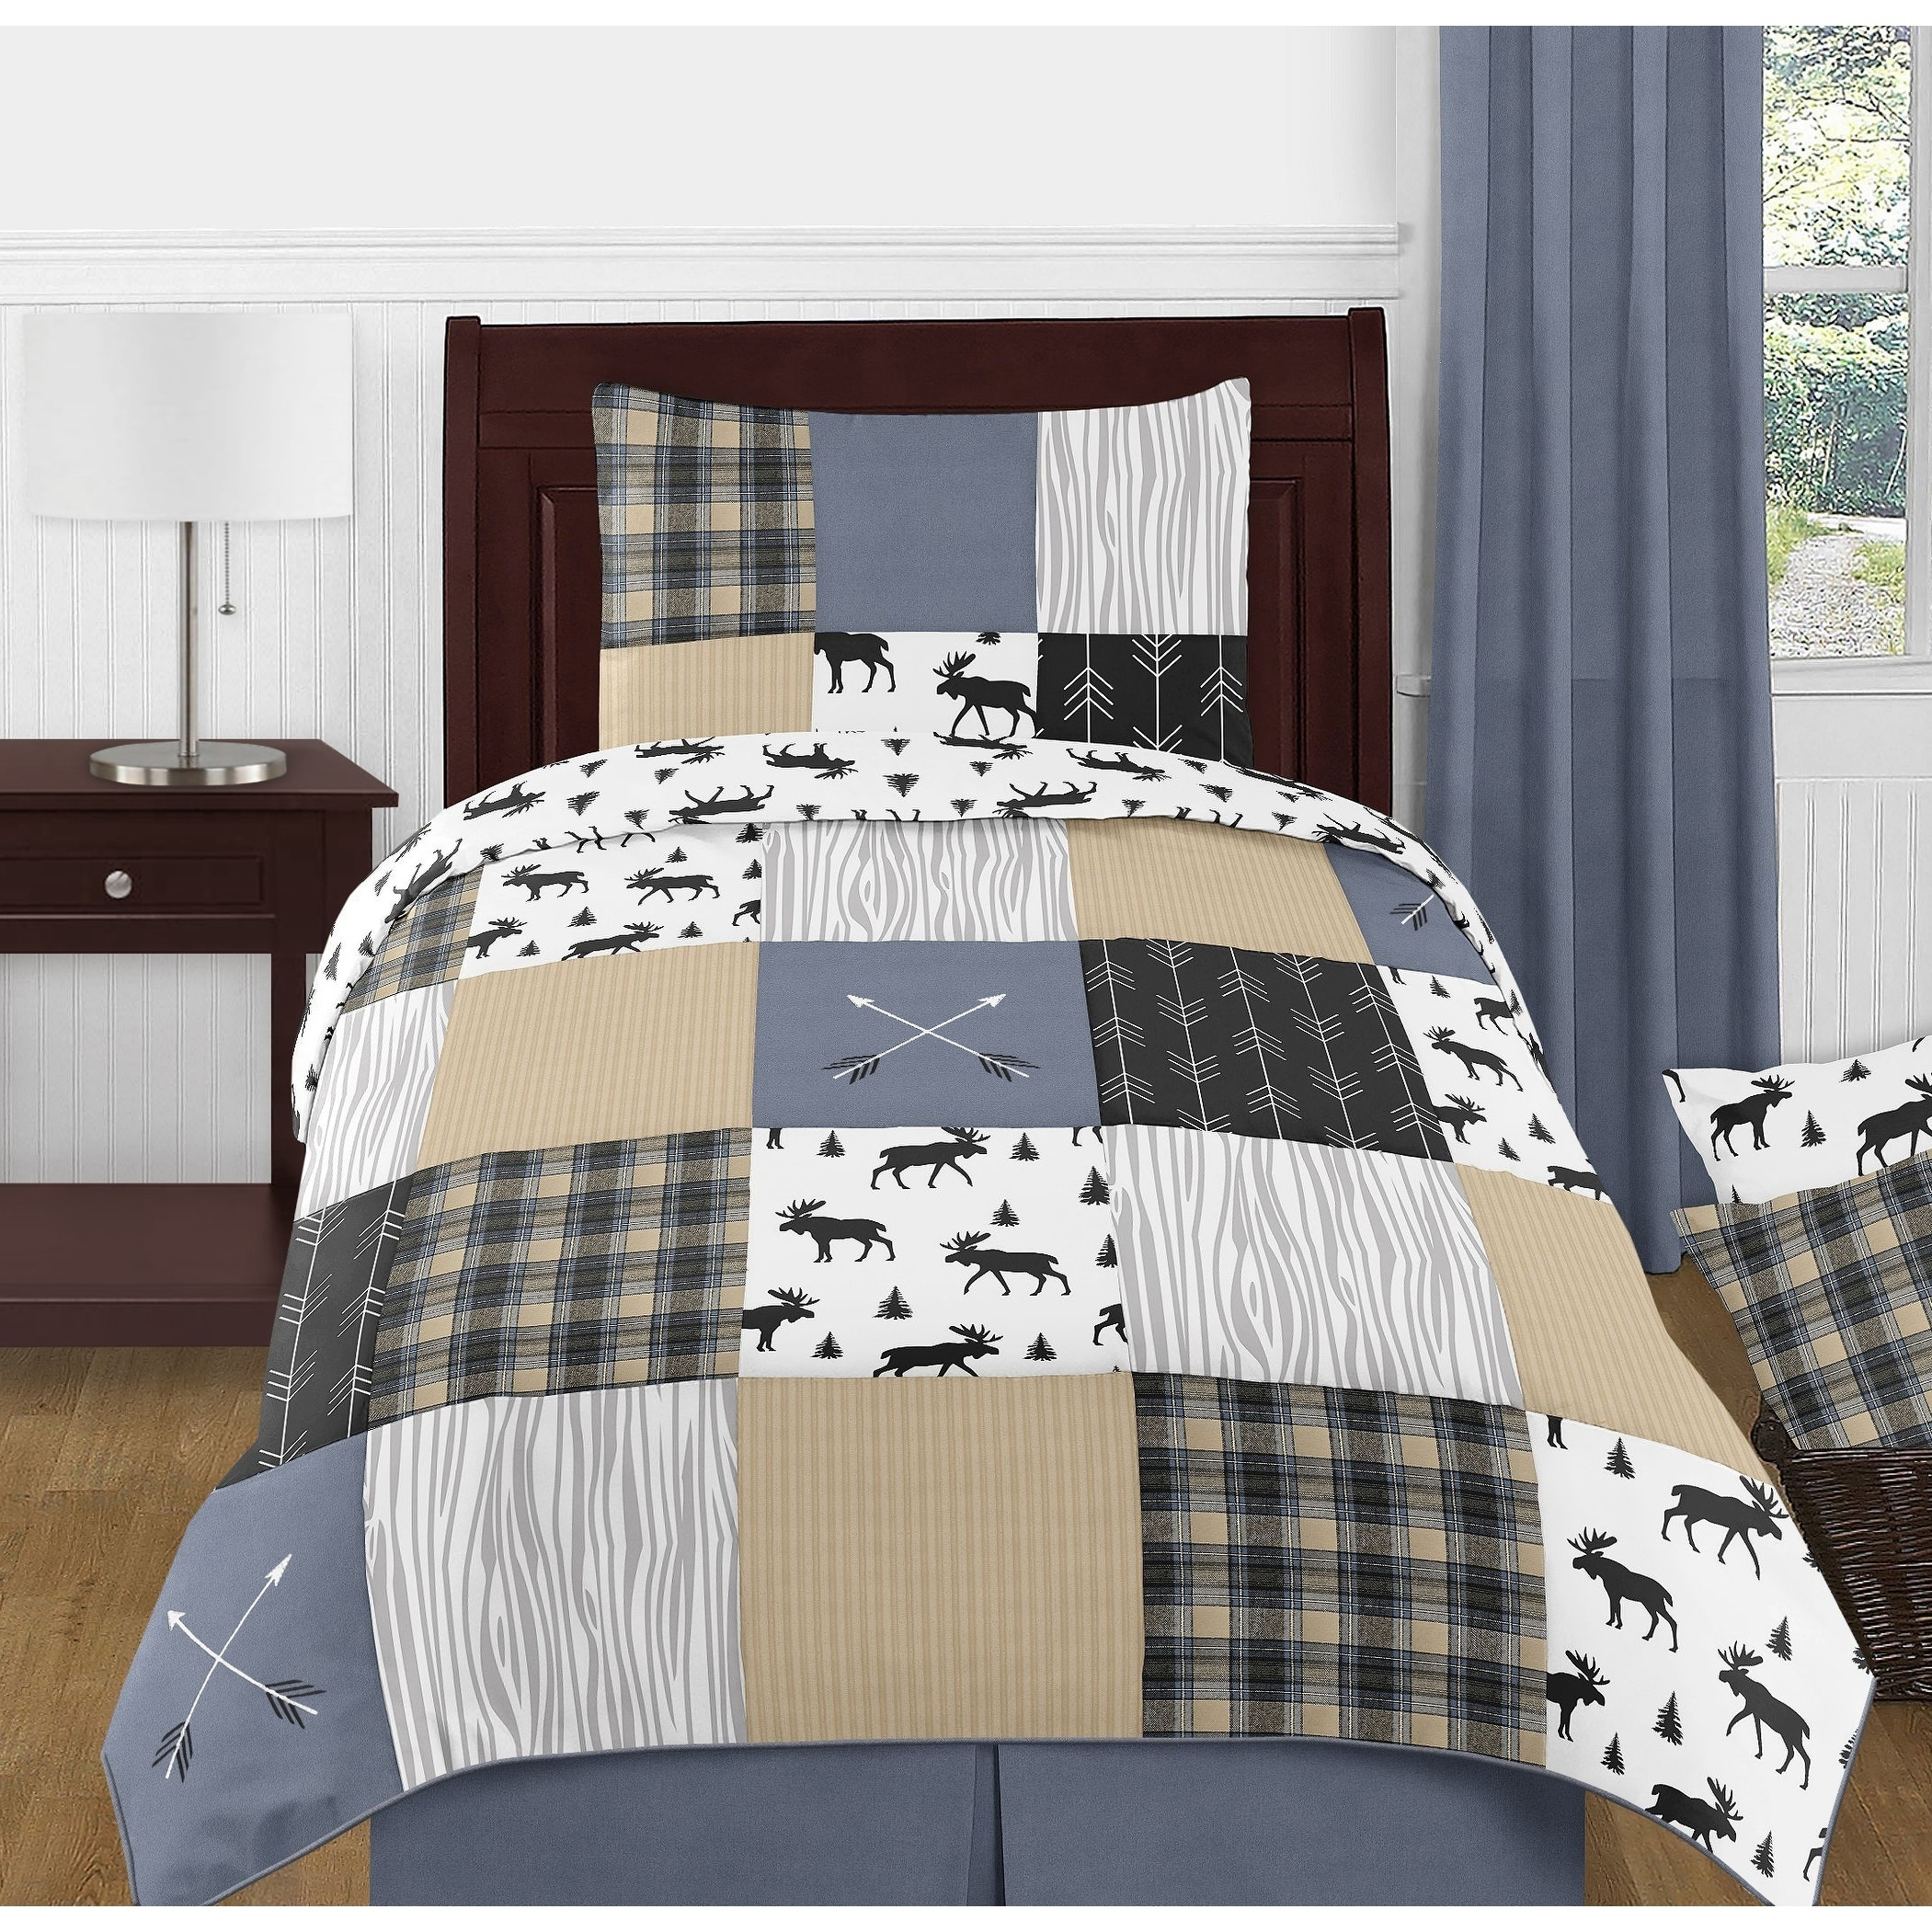 Sweet Jojo Designs Blue Tan Grey And Black Woodland Plaid And Arrow Rustic Patch Collection Boy 4 Piece Twin Size Comforter Set Overstock 27279015